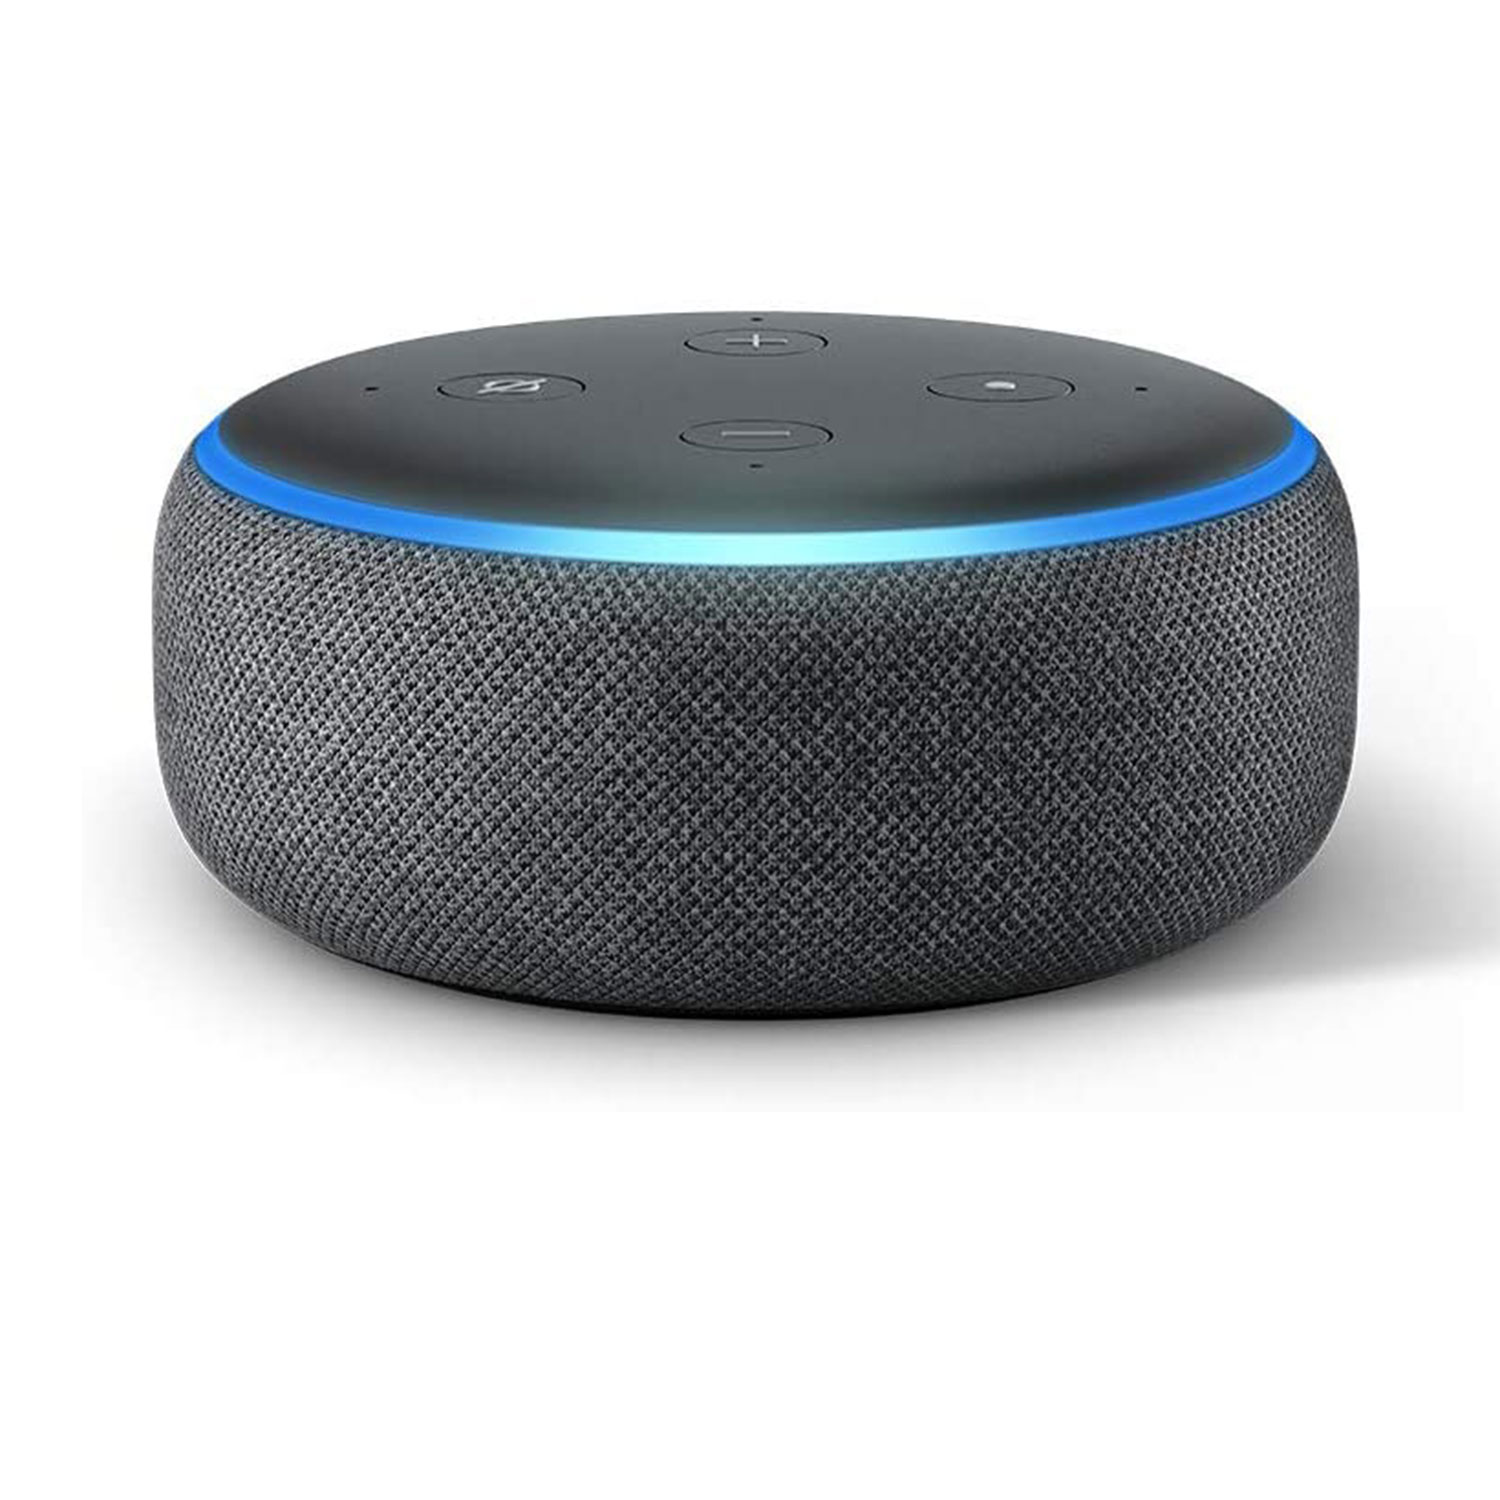 echo dot smart speaker alexa